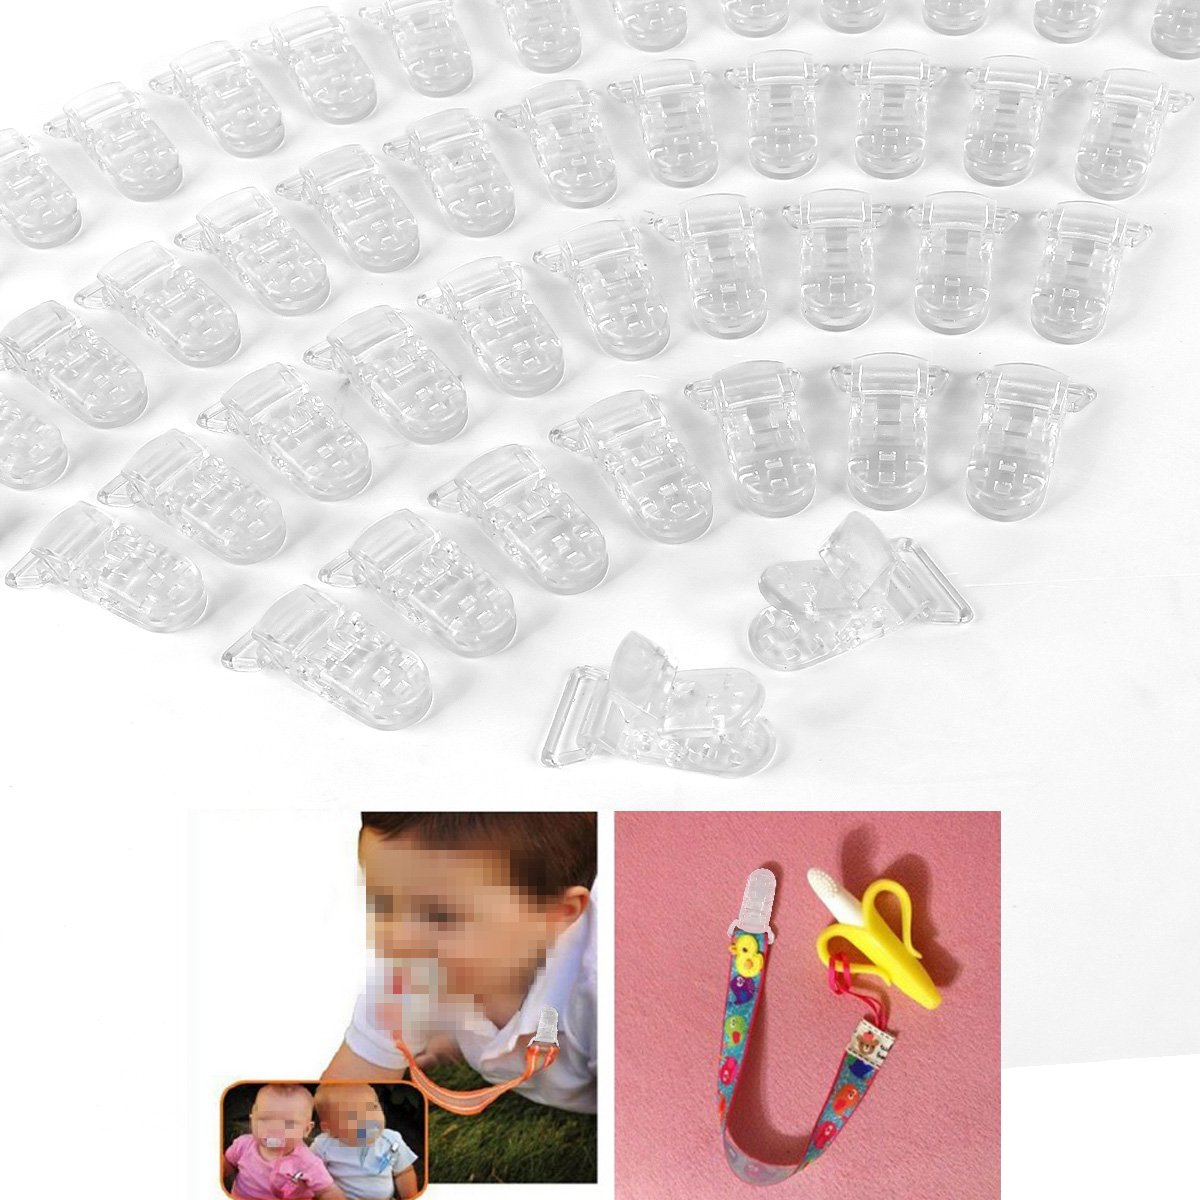 50pcs KAM Pince /à sucette bretelle attache clip plastique transparent